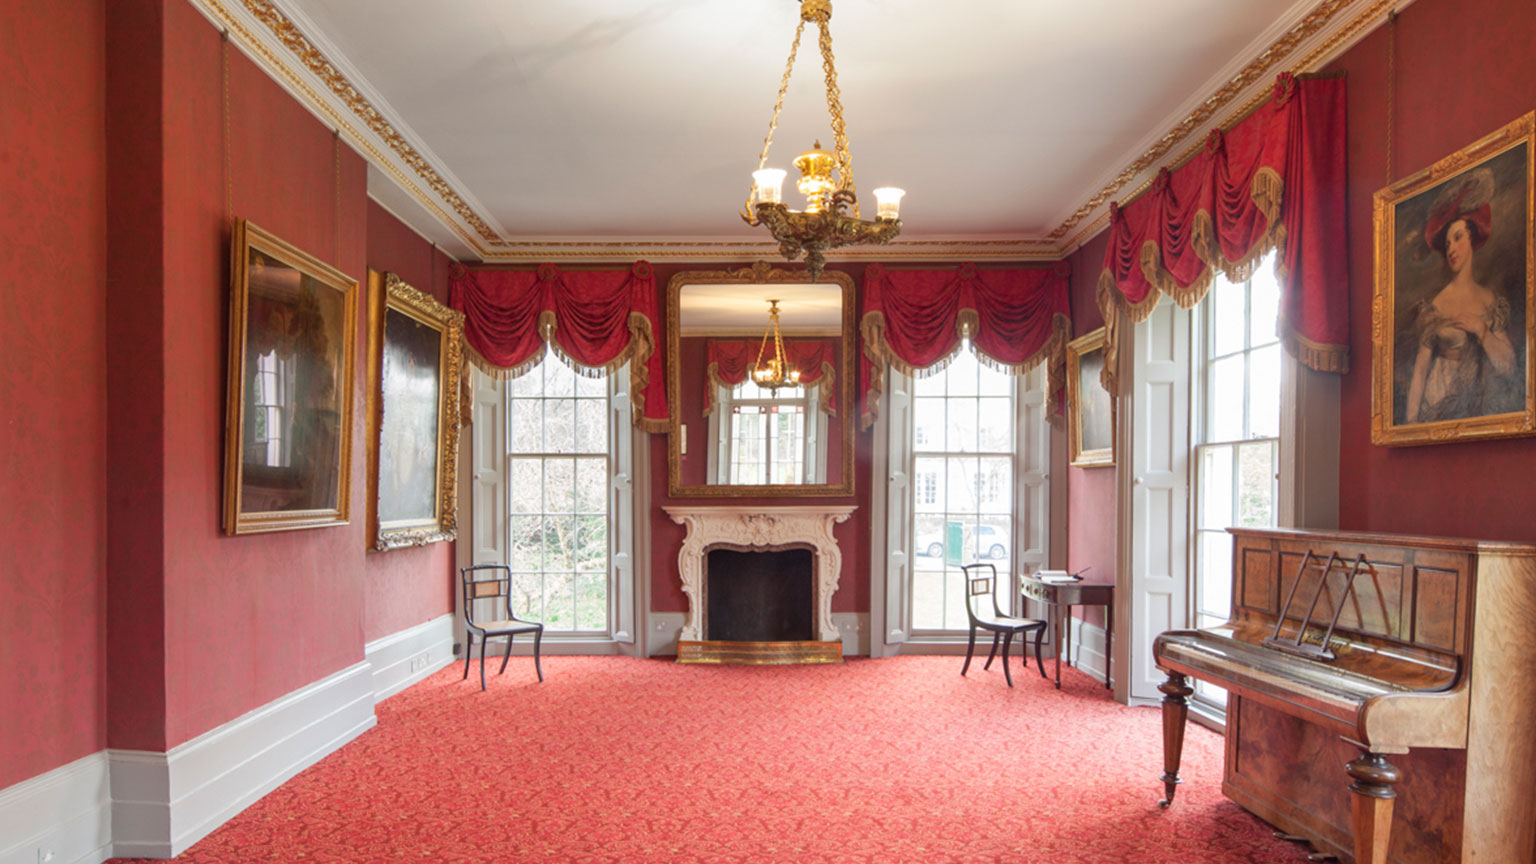 The Chester Room